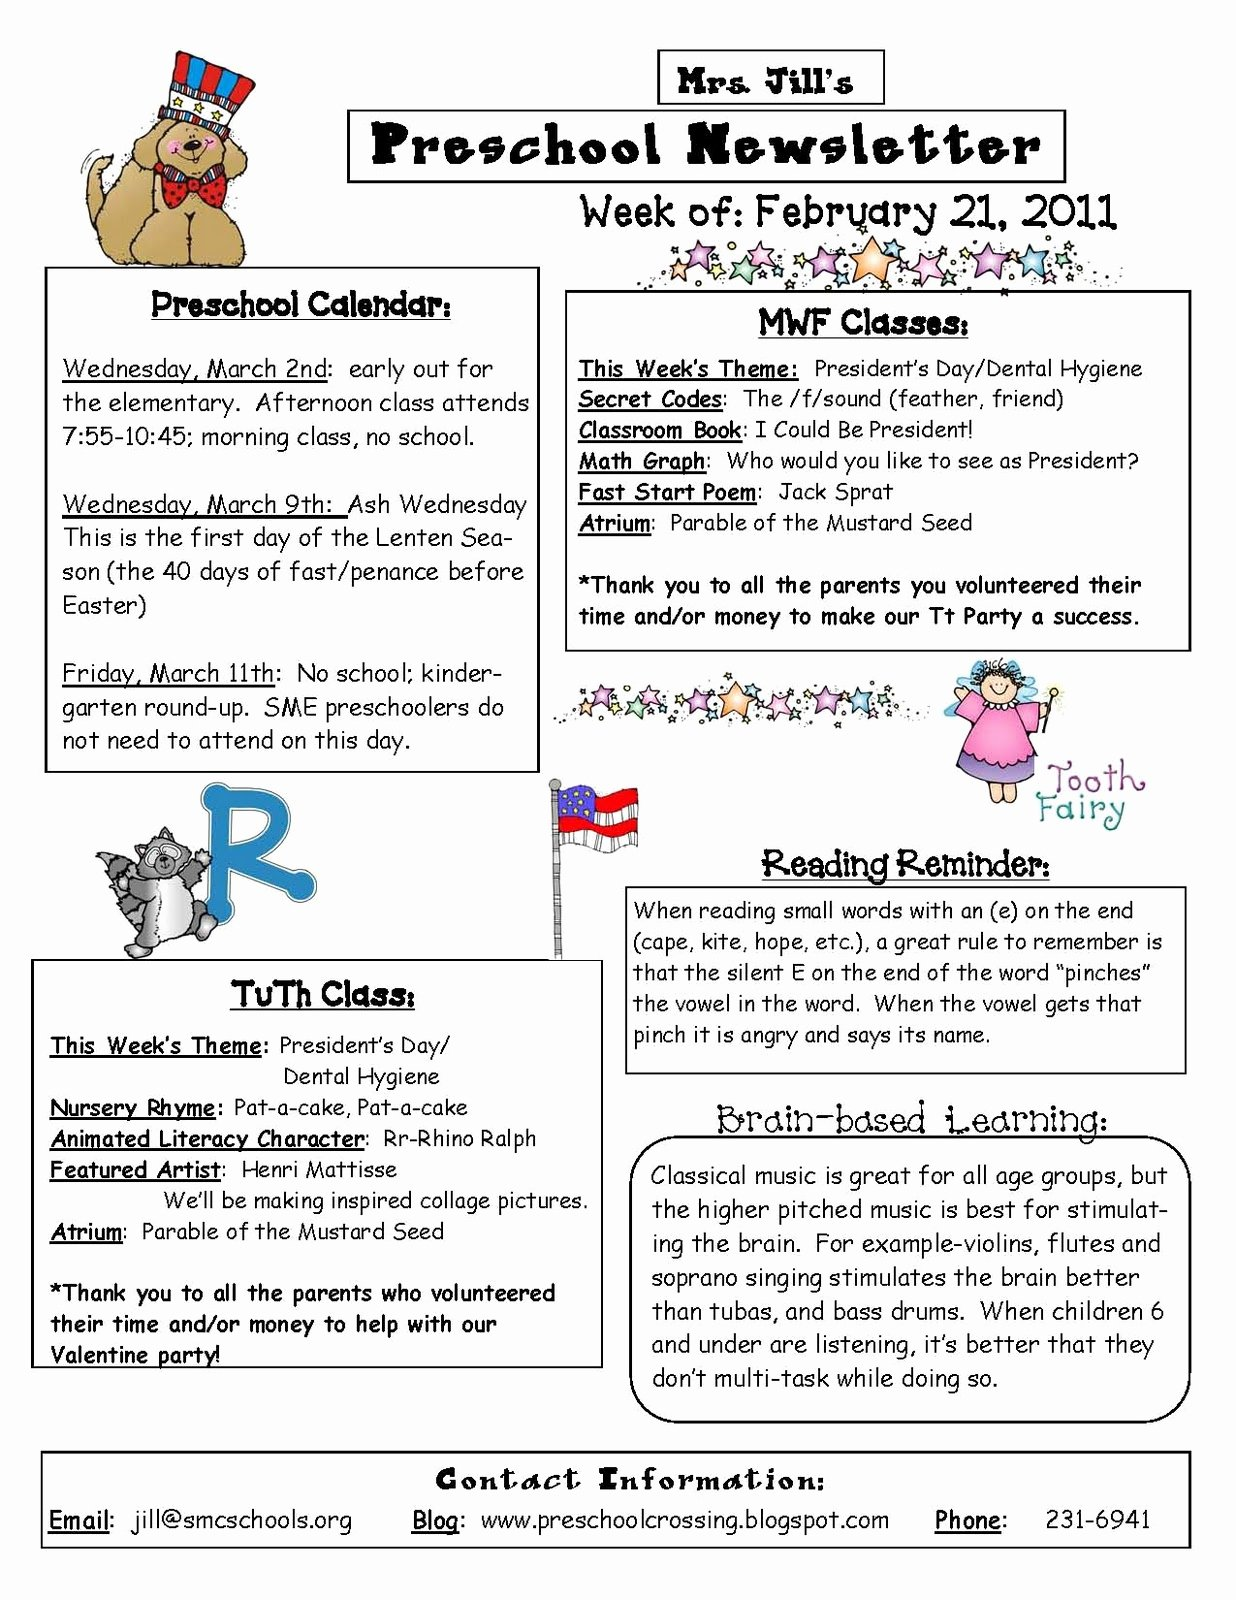 Preschool Weekly Newsletter Template Awesome Preschool Crossing Here is An Example Of My Weekly Newsletter